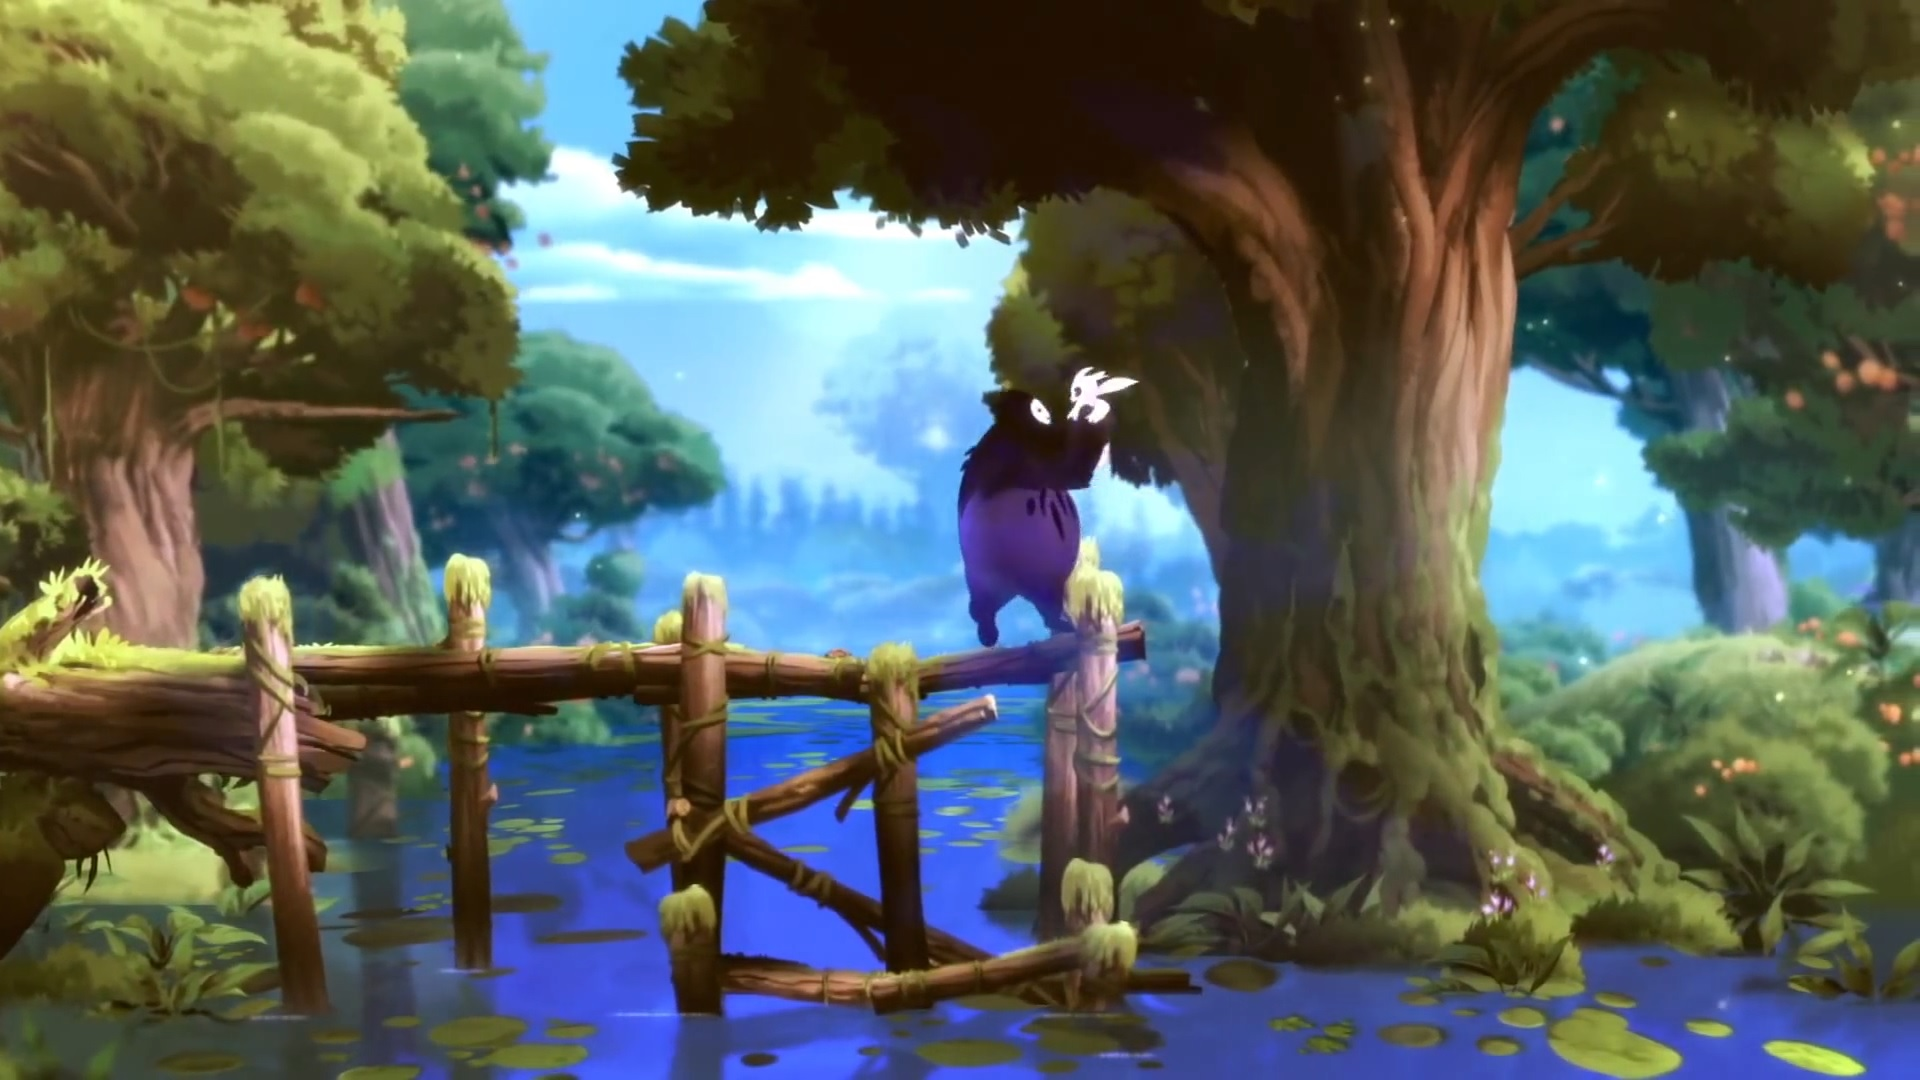 Wonderful graphics in Ori and the Blind Forest